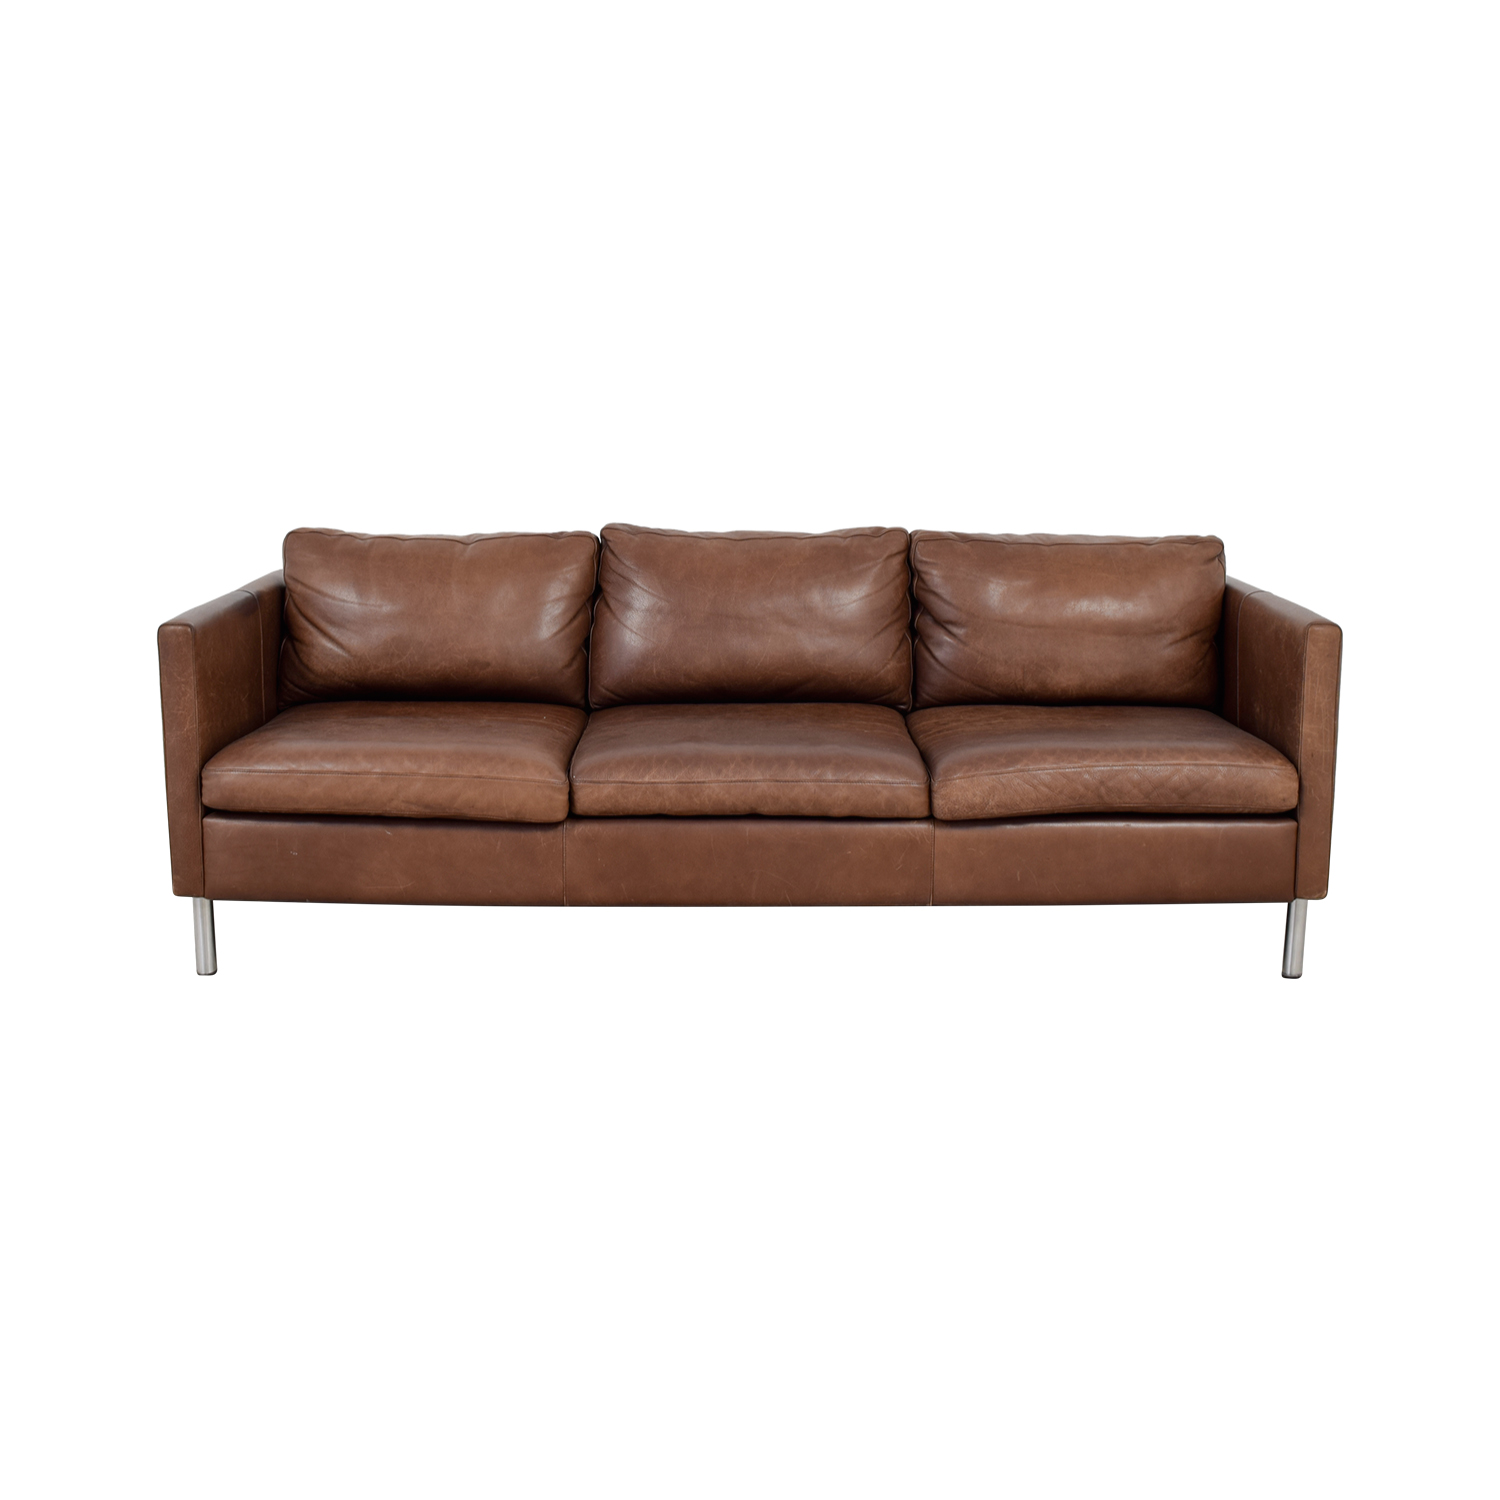 Room Board Jackson Brown Leather Three Cushion Sofa Second